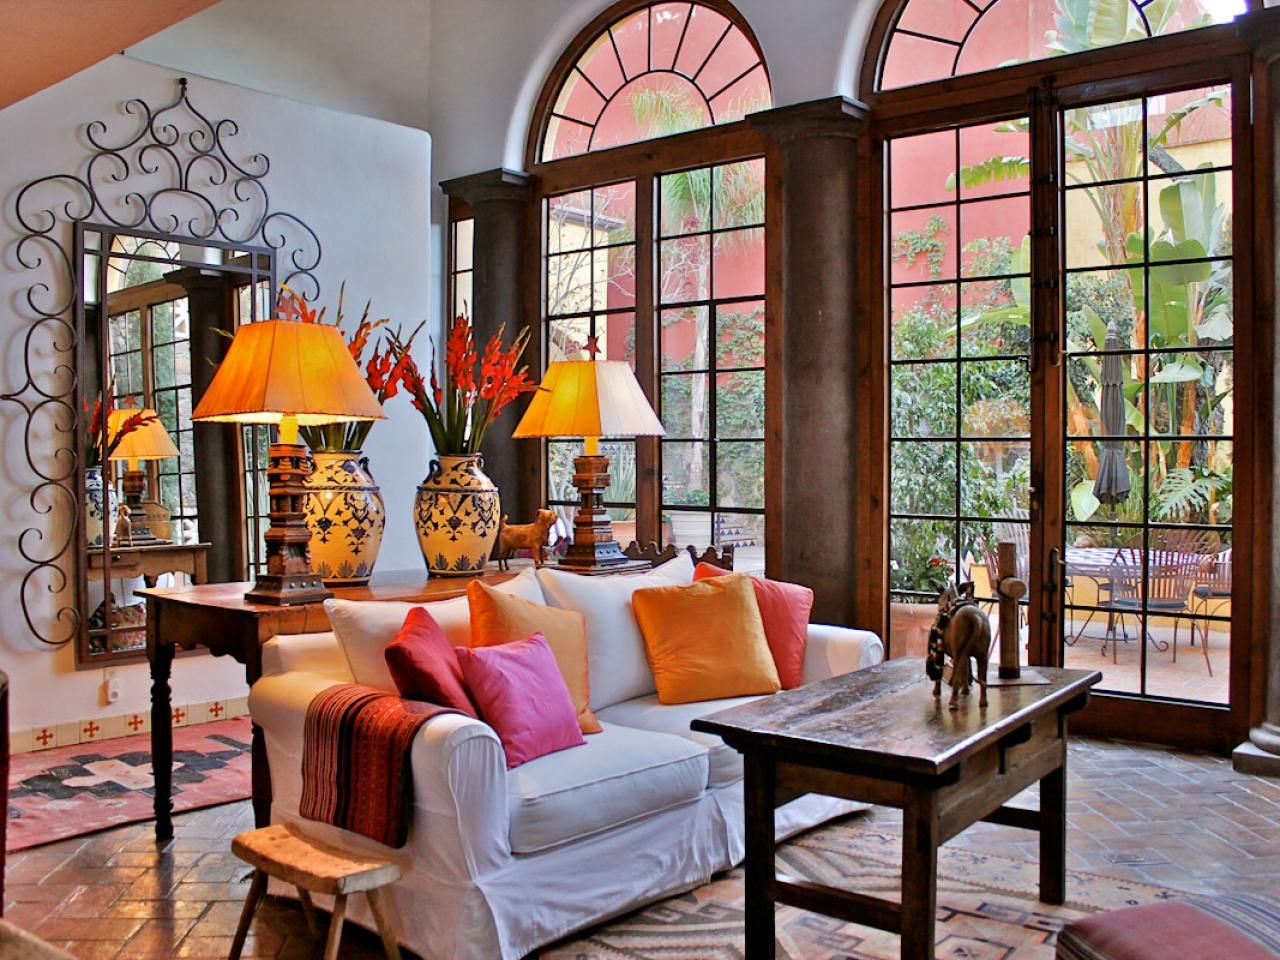 Spanish Revival Interior Design 10 Spanish Inspired Rooms California Spanish Revival Mexican